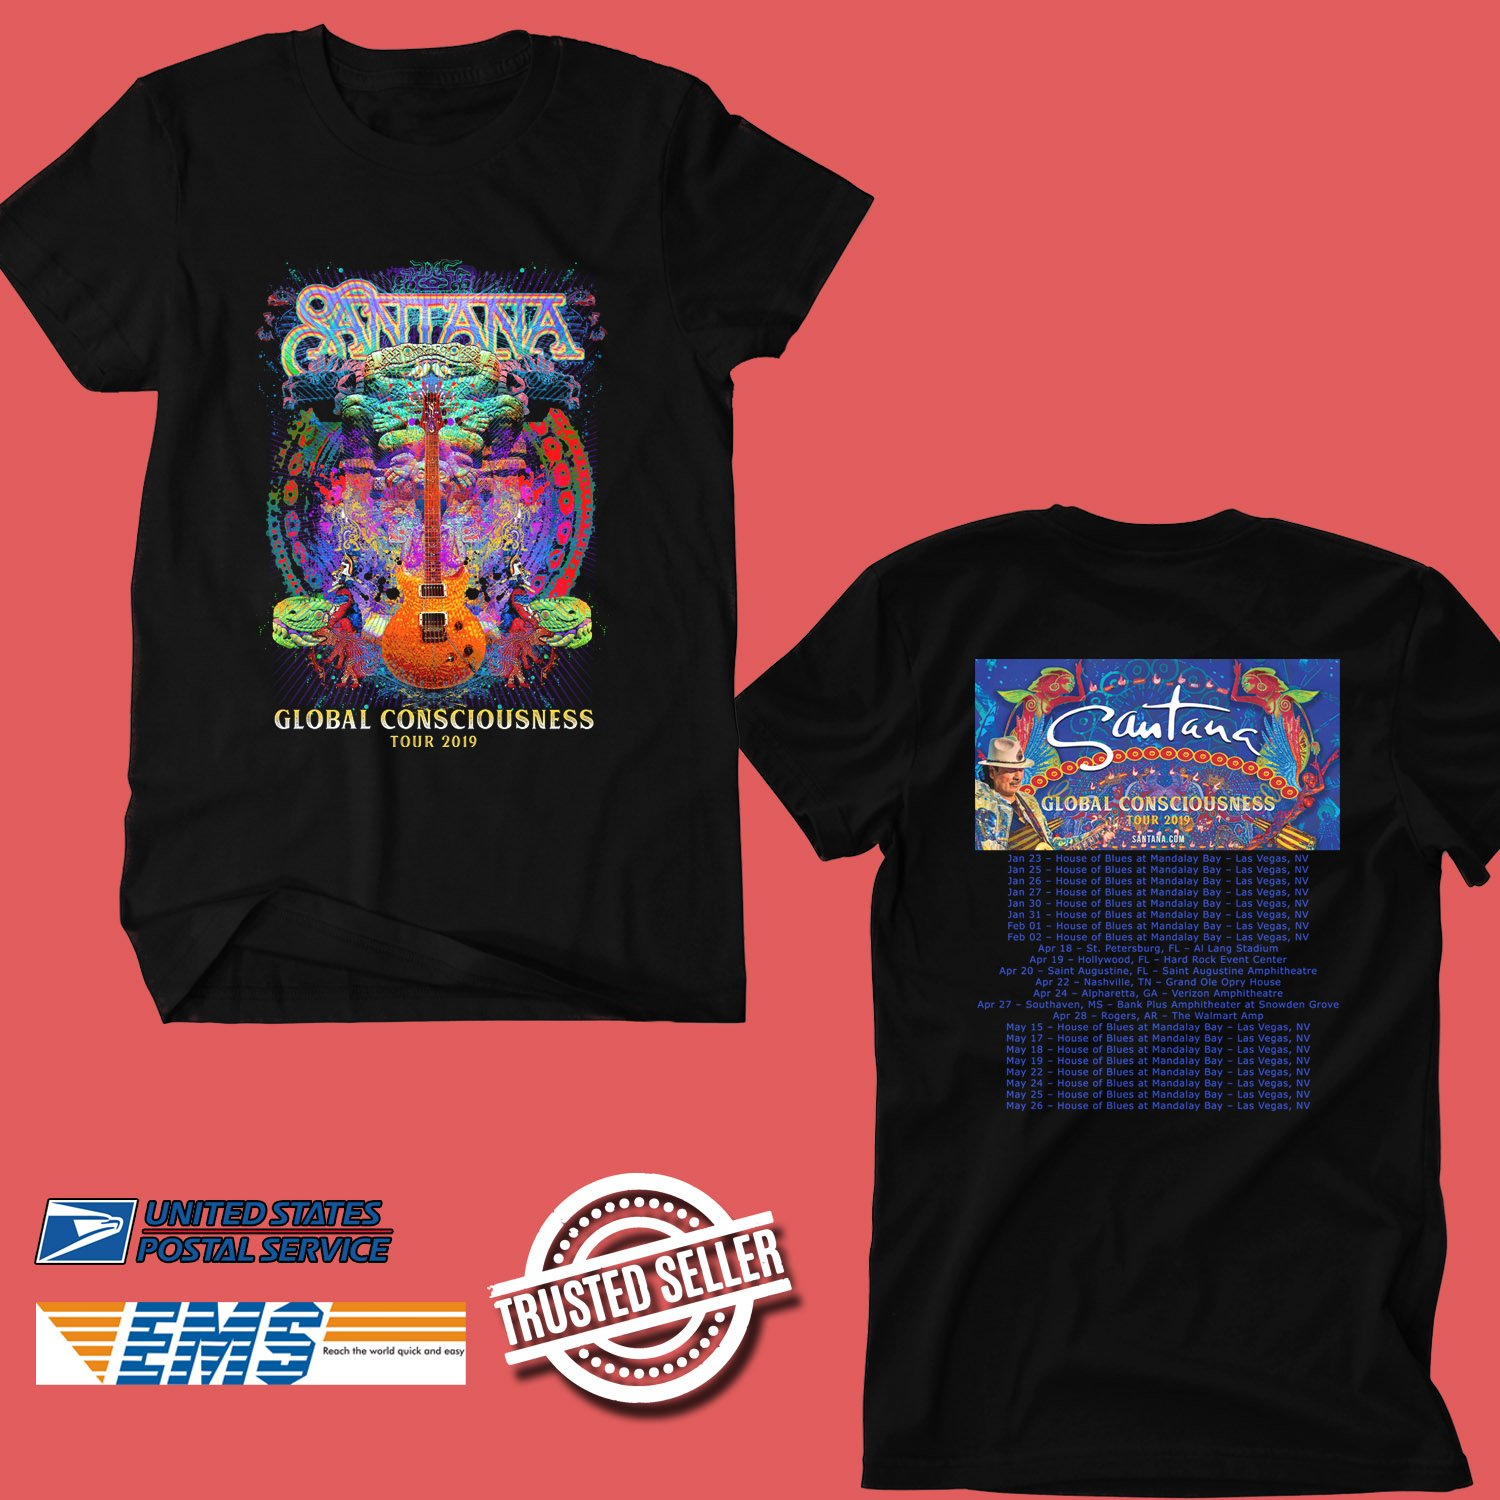 CONCERT 2019 SANTANA GLOBAL CONSCIOUSNESS TOUR BLACK TEE DATES CODE EP02